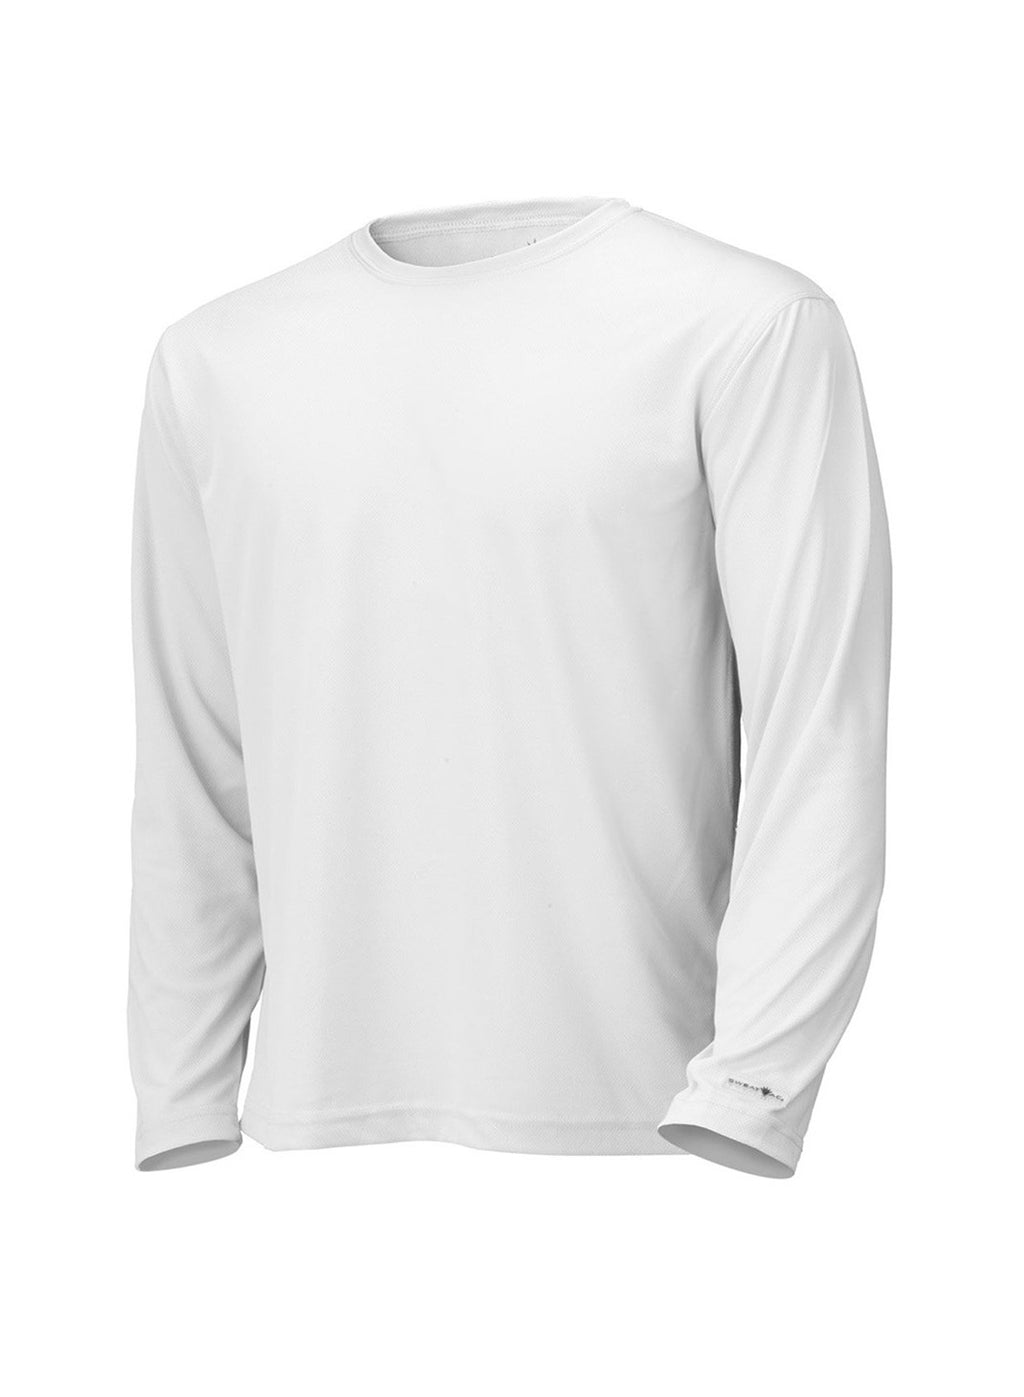 Youth Long Sleeve Race Shirt